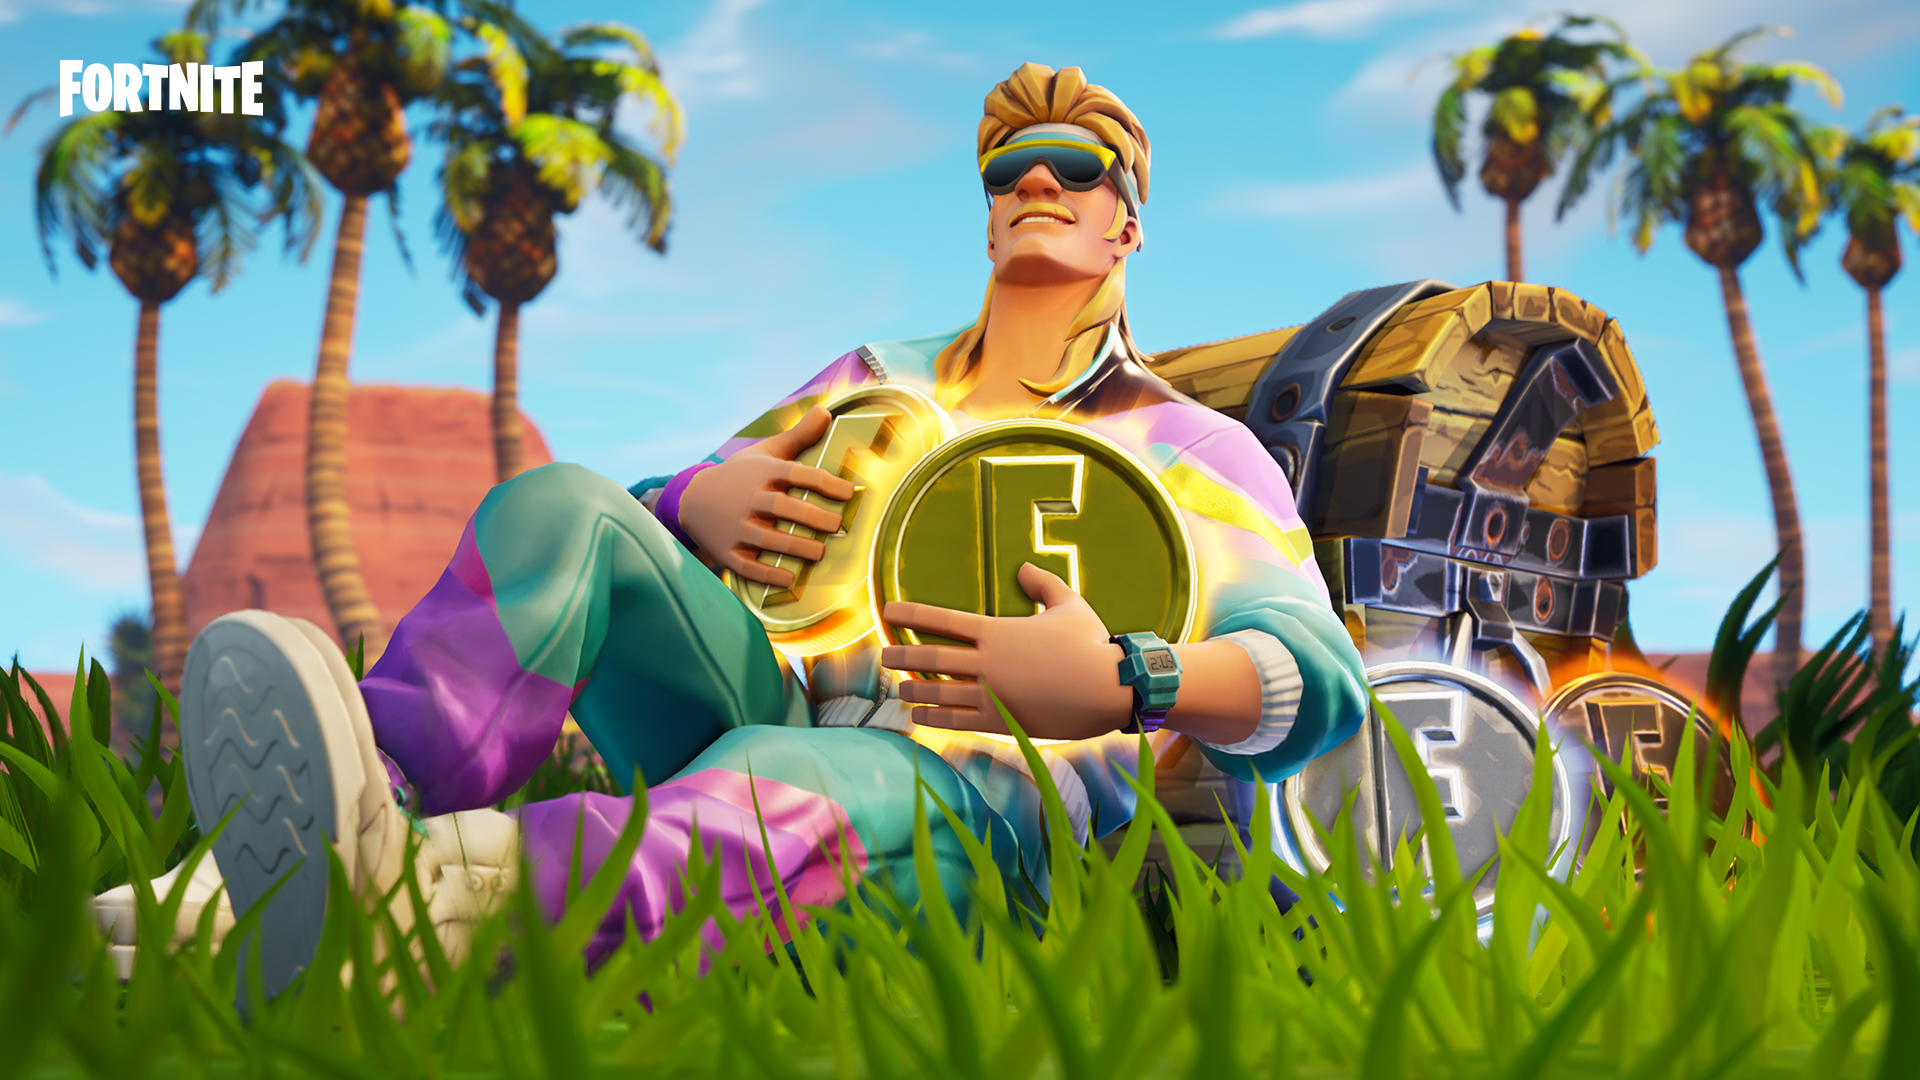 Fortnite On Ios Hits 300 Million Revenue In 200 Days Venturebeat Requires an internet connection and ios 13.2 or above. ios hits 300 million revenue